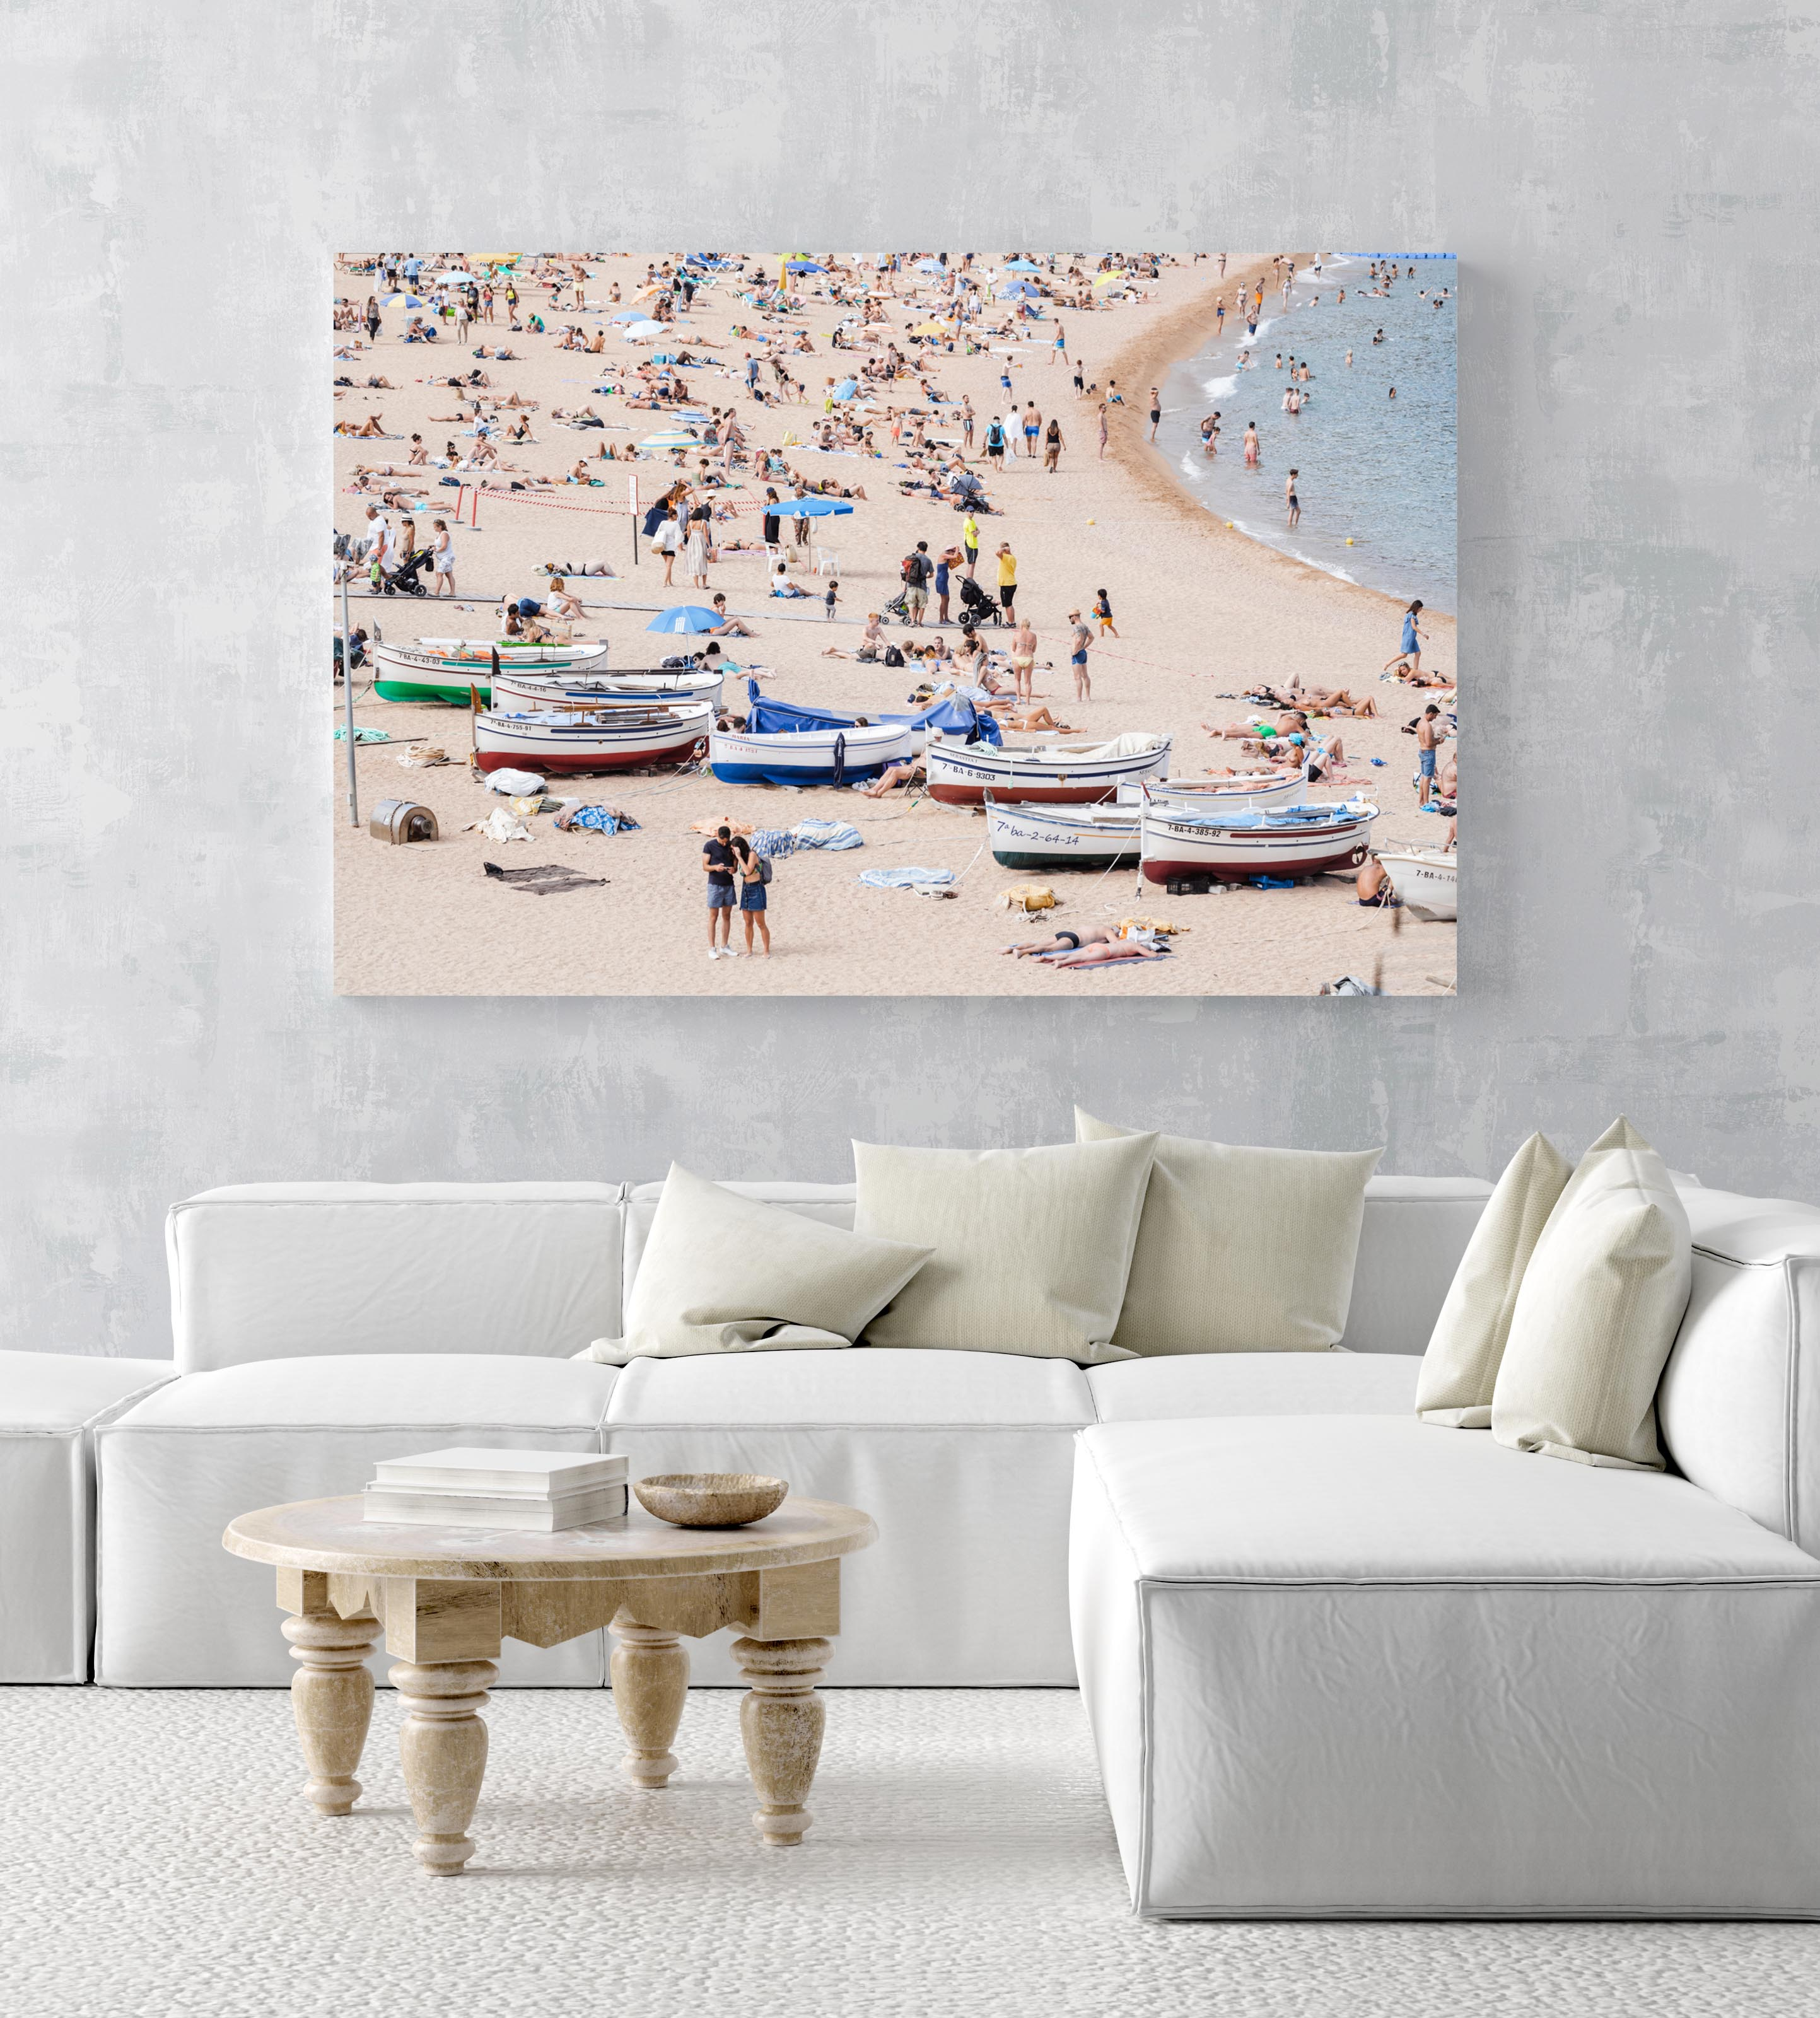 Boats and people beached along Tossa de Mar beach in an acrylic/perspex frame